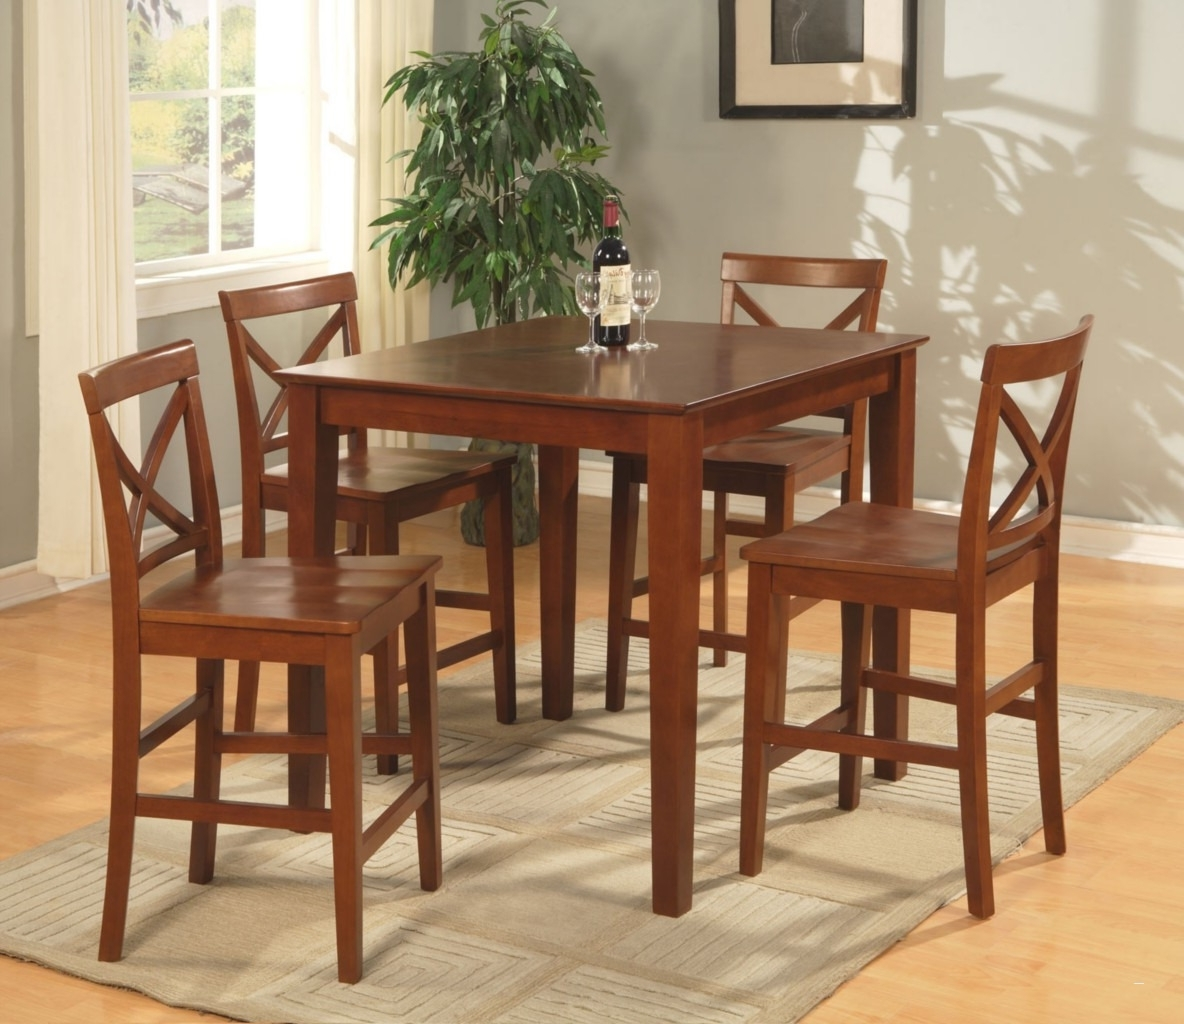 Latest Asian Dining Room Table Luxury Nice Square Dining Table Sets Intended For Asian Dining Tables (View 12 of 25)